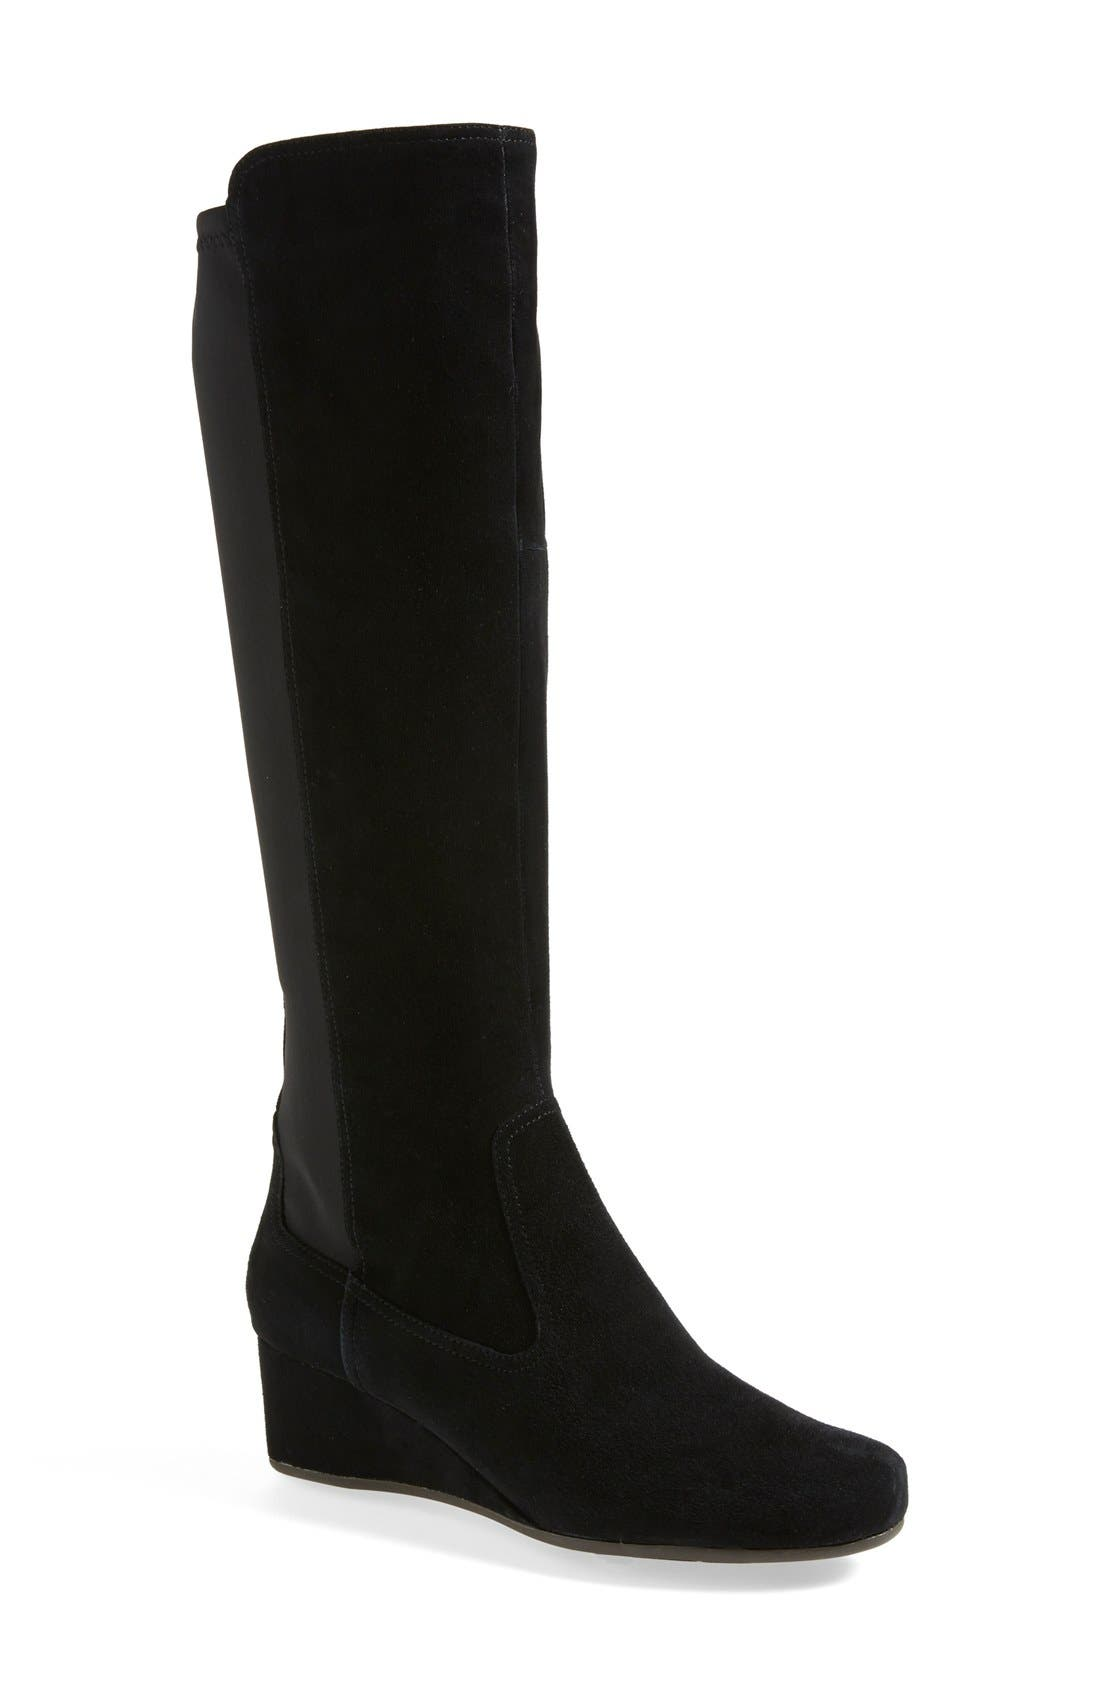 rockport total motion suede boot wide calf